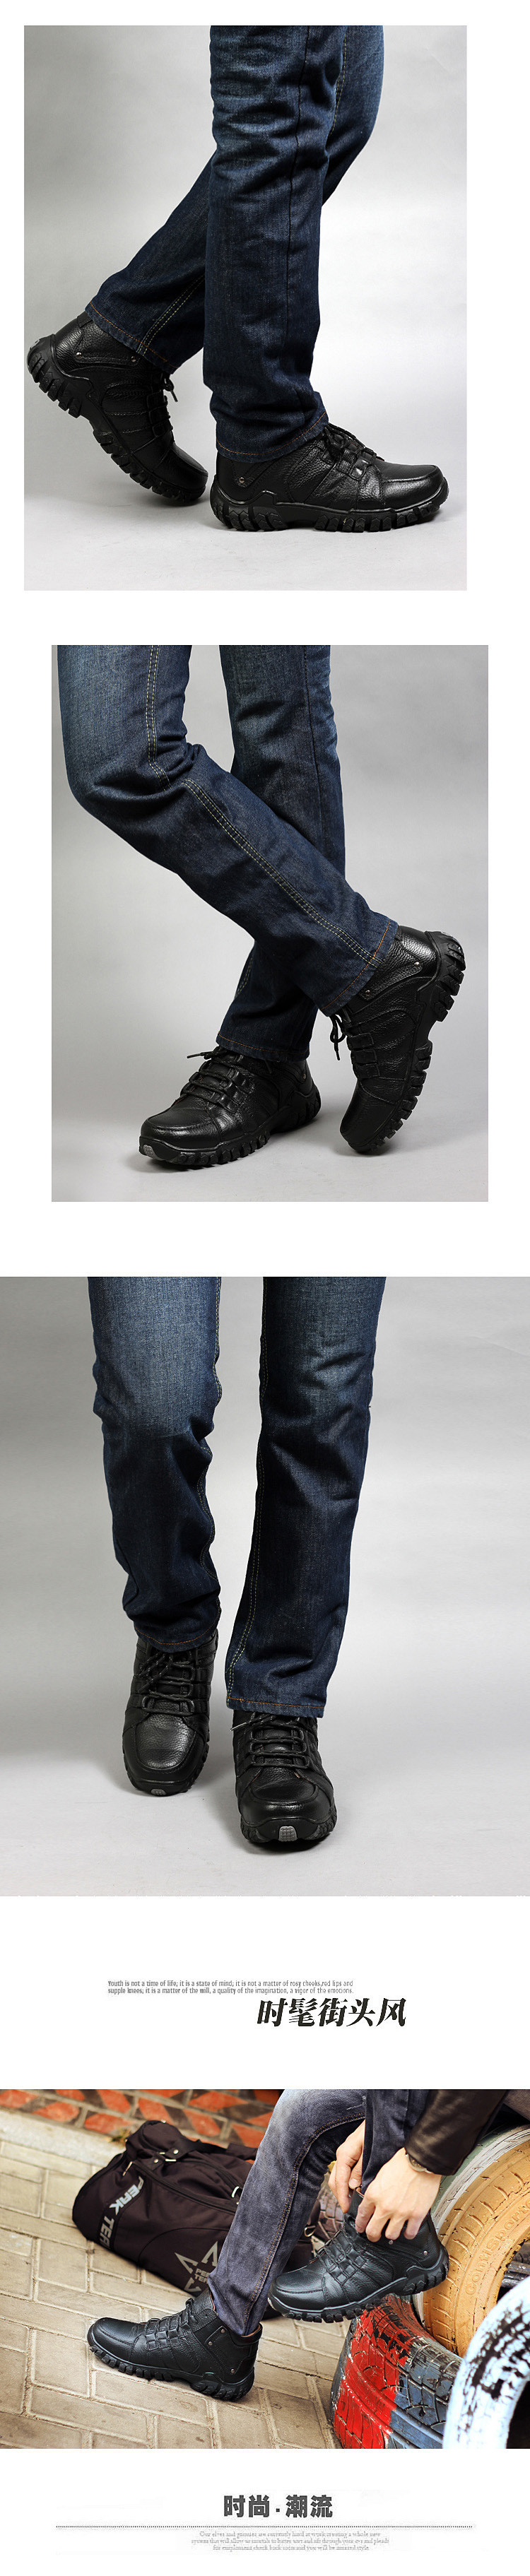 2013 Winter Sneakers New Stylish Men's OutDoor Shoes,Lace-Up Warm